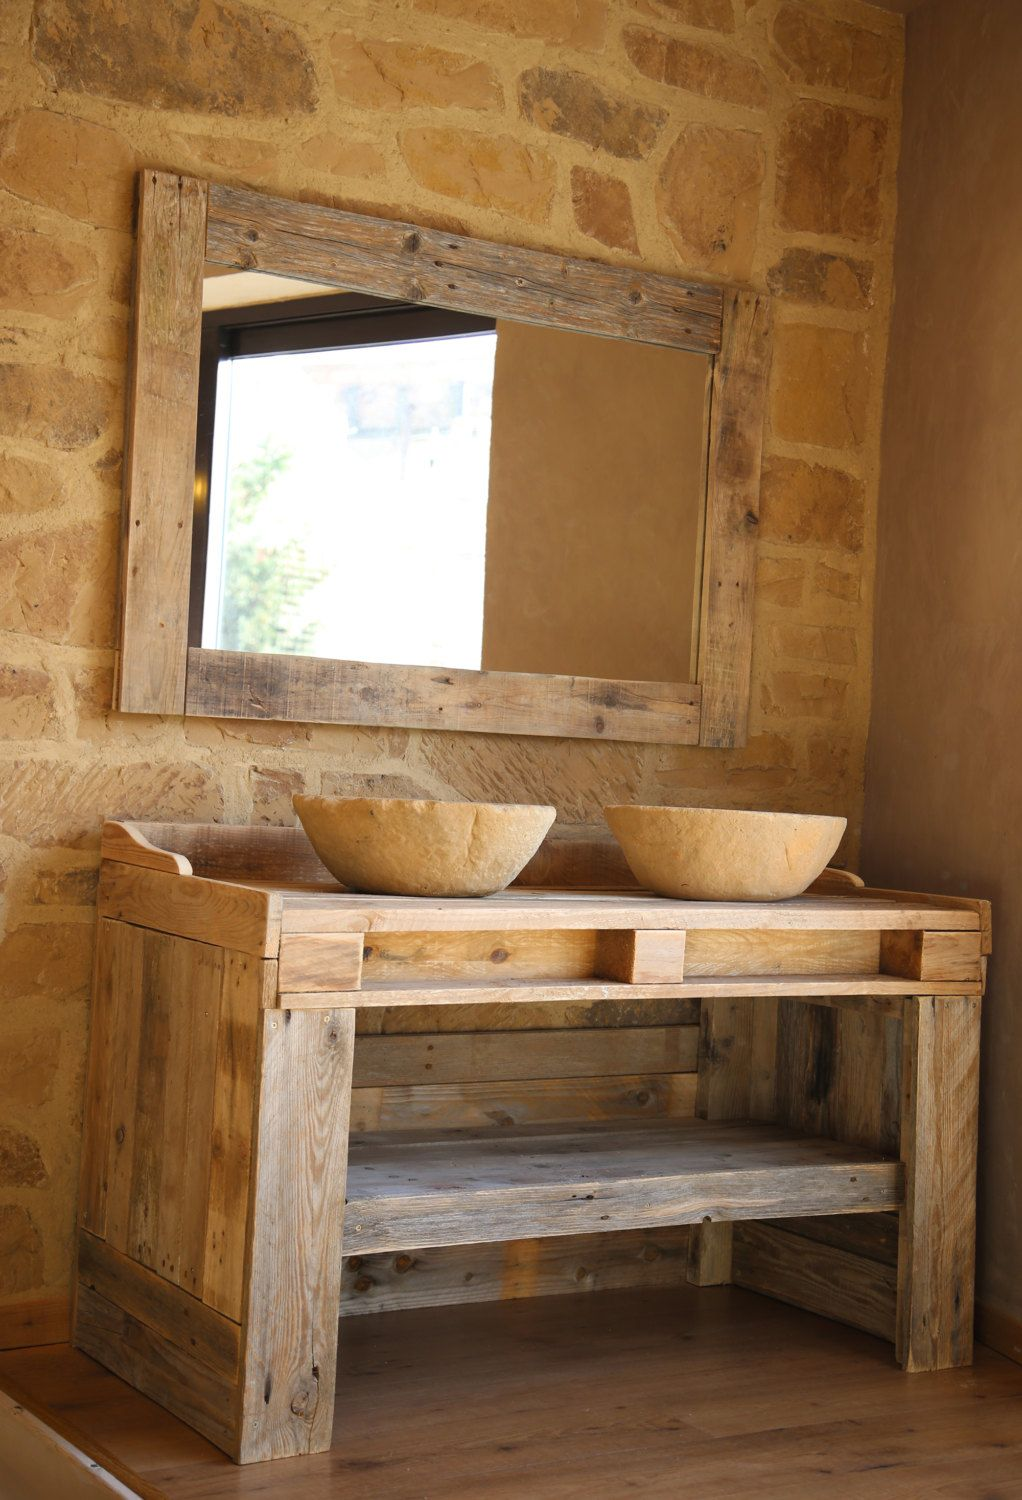 BATHROOM CABINET made from recycled pallet by